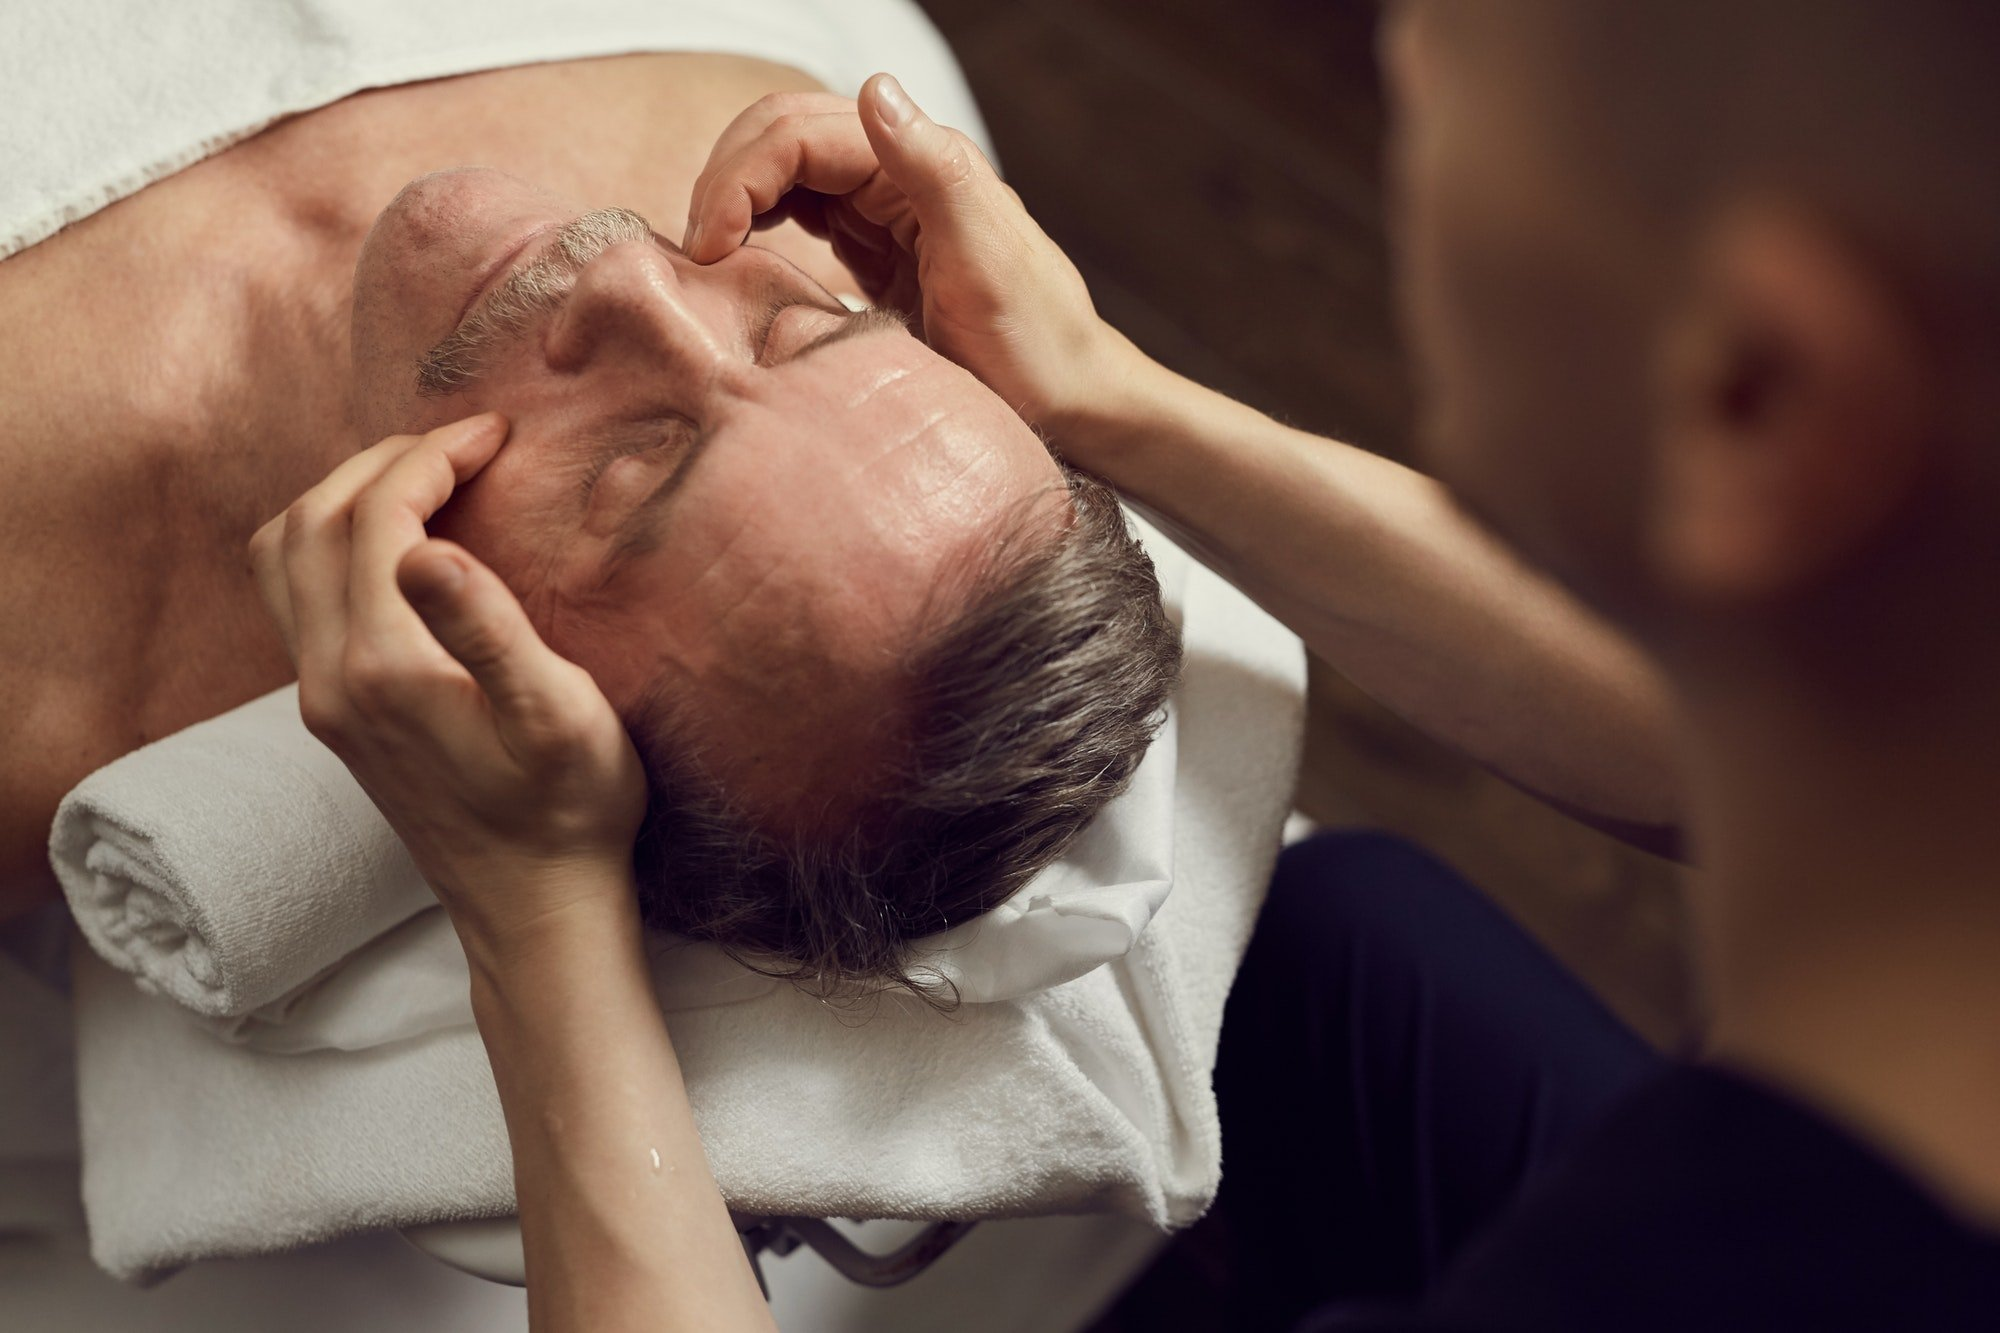 Mature Man Enjoying Facial Massage in SPA